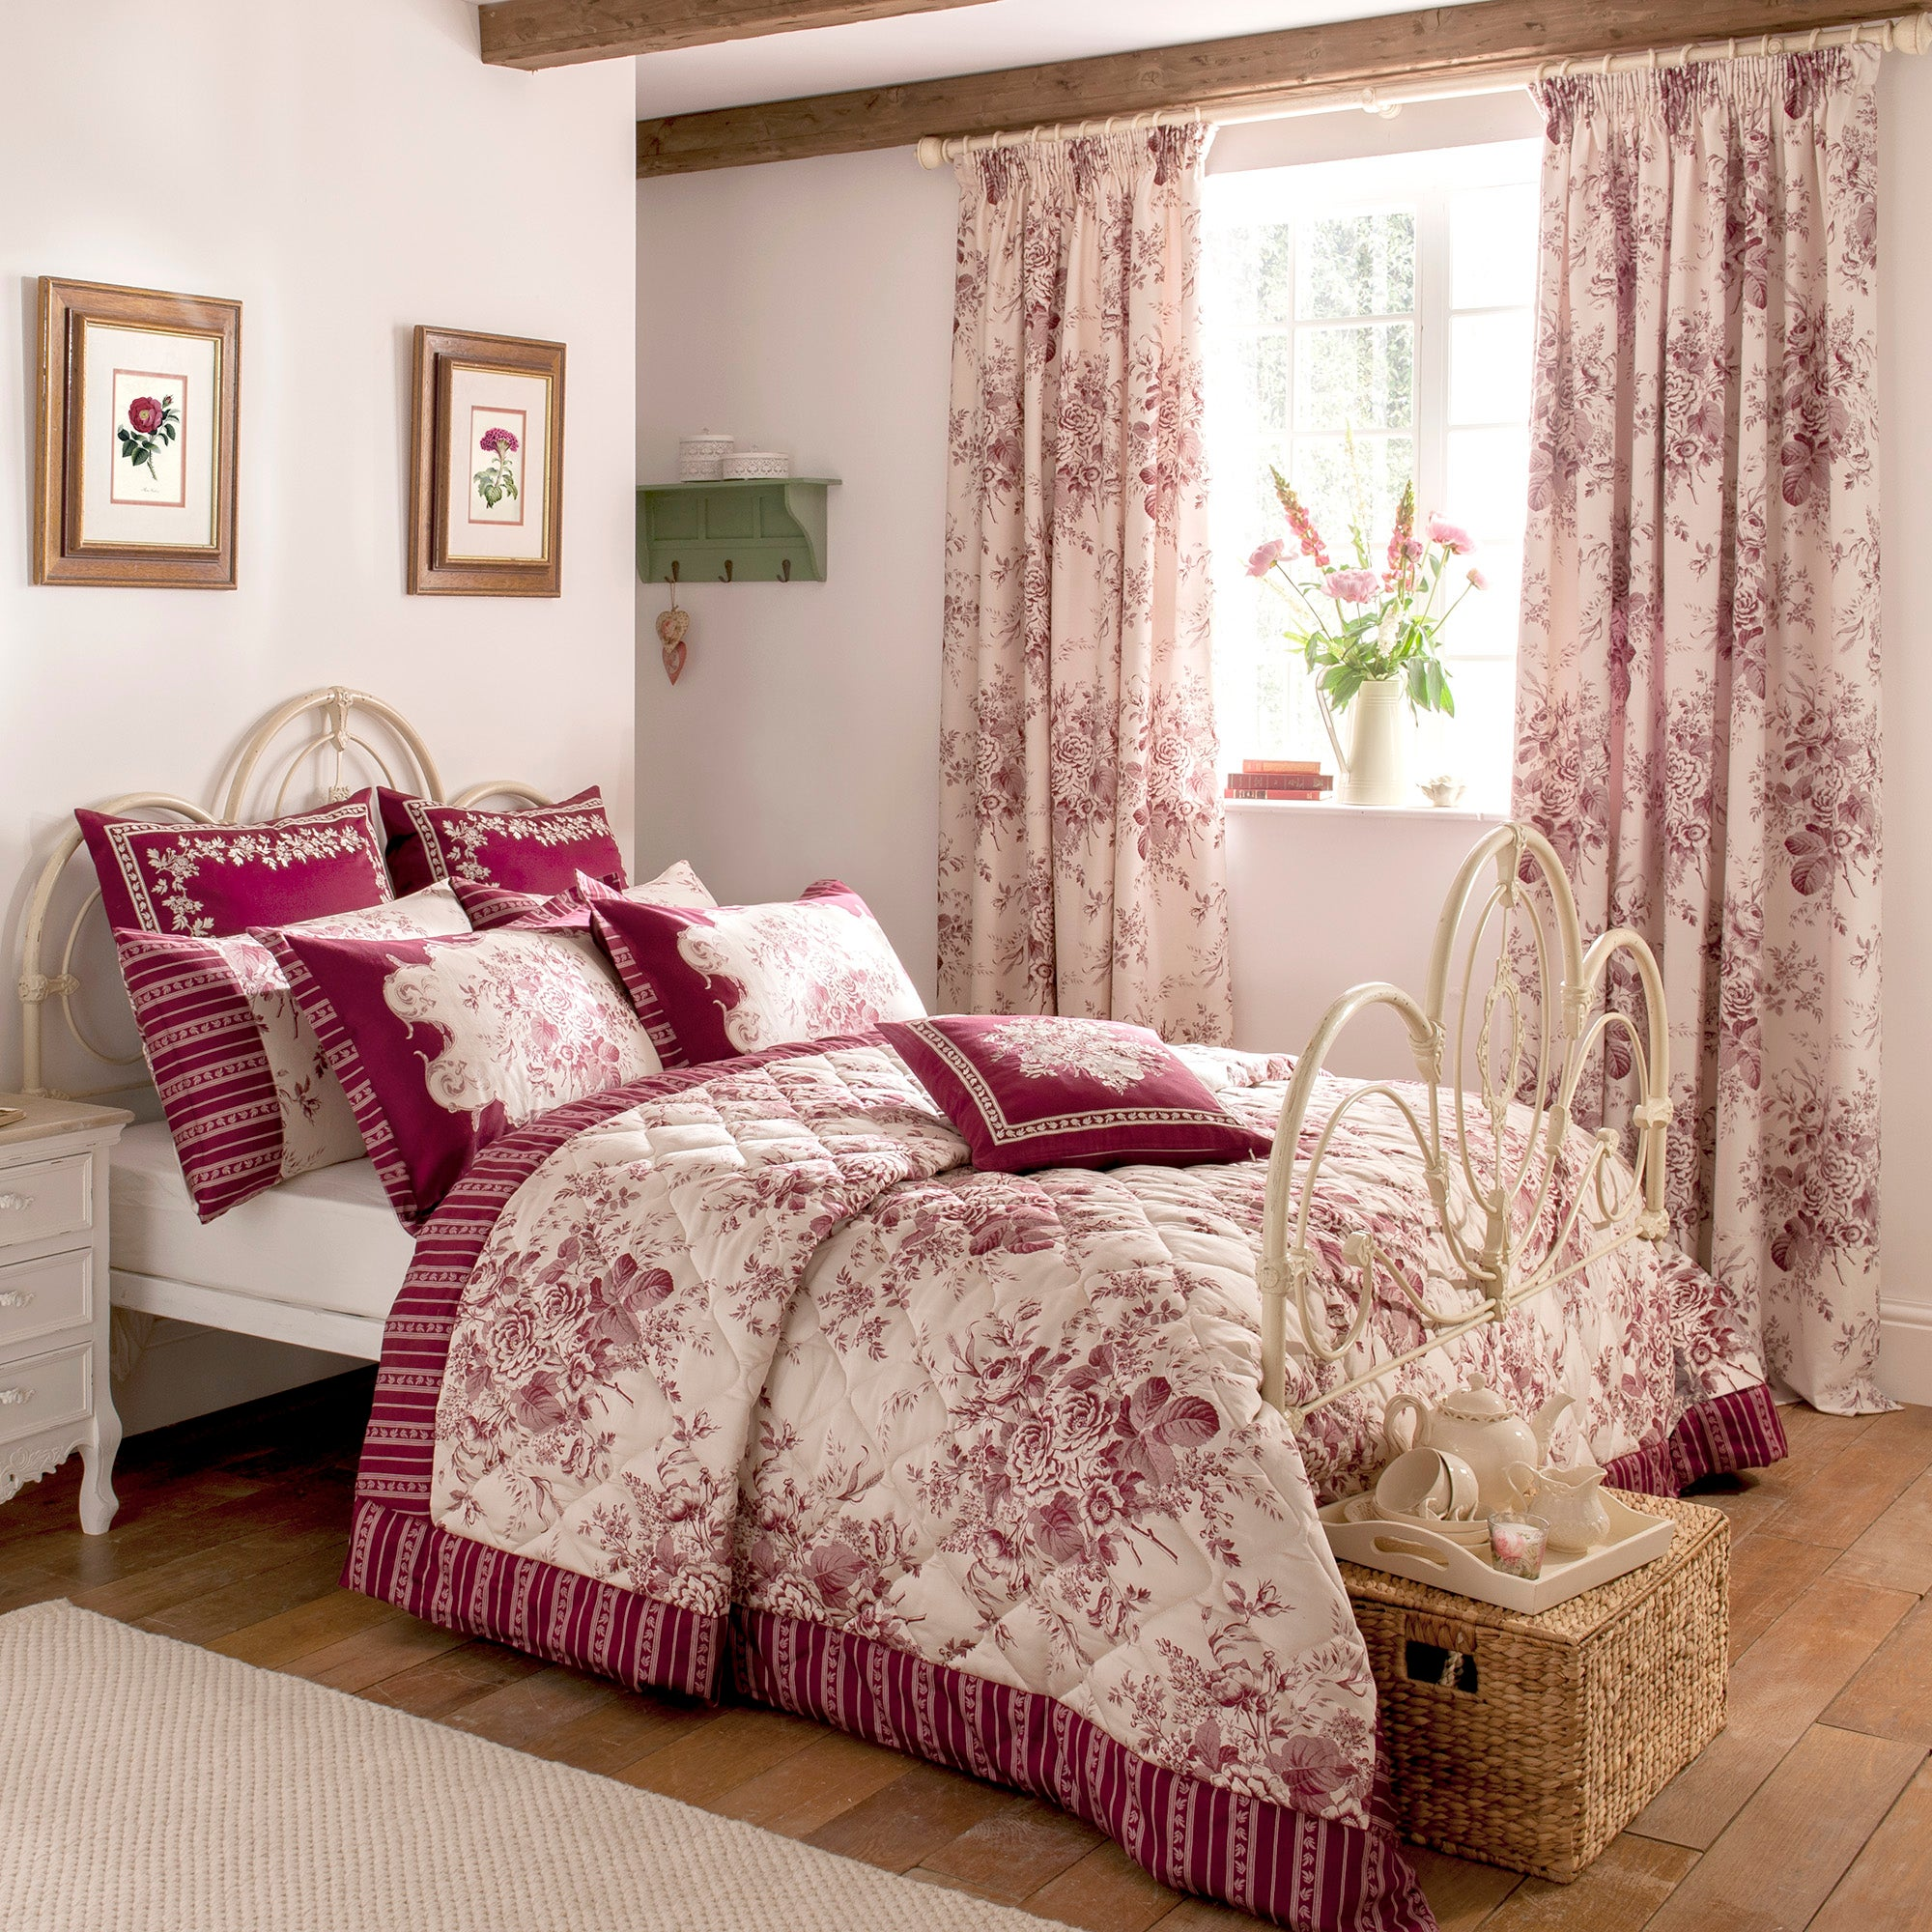 Buy Cheap Dorma Bedding Compare Home Textiles Prices For